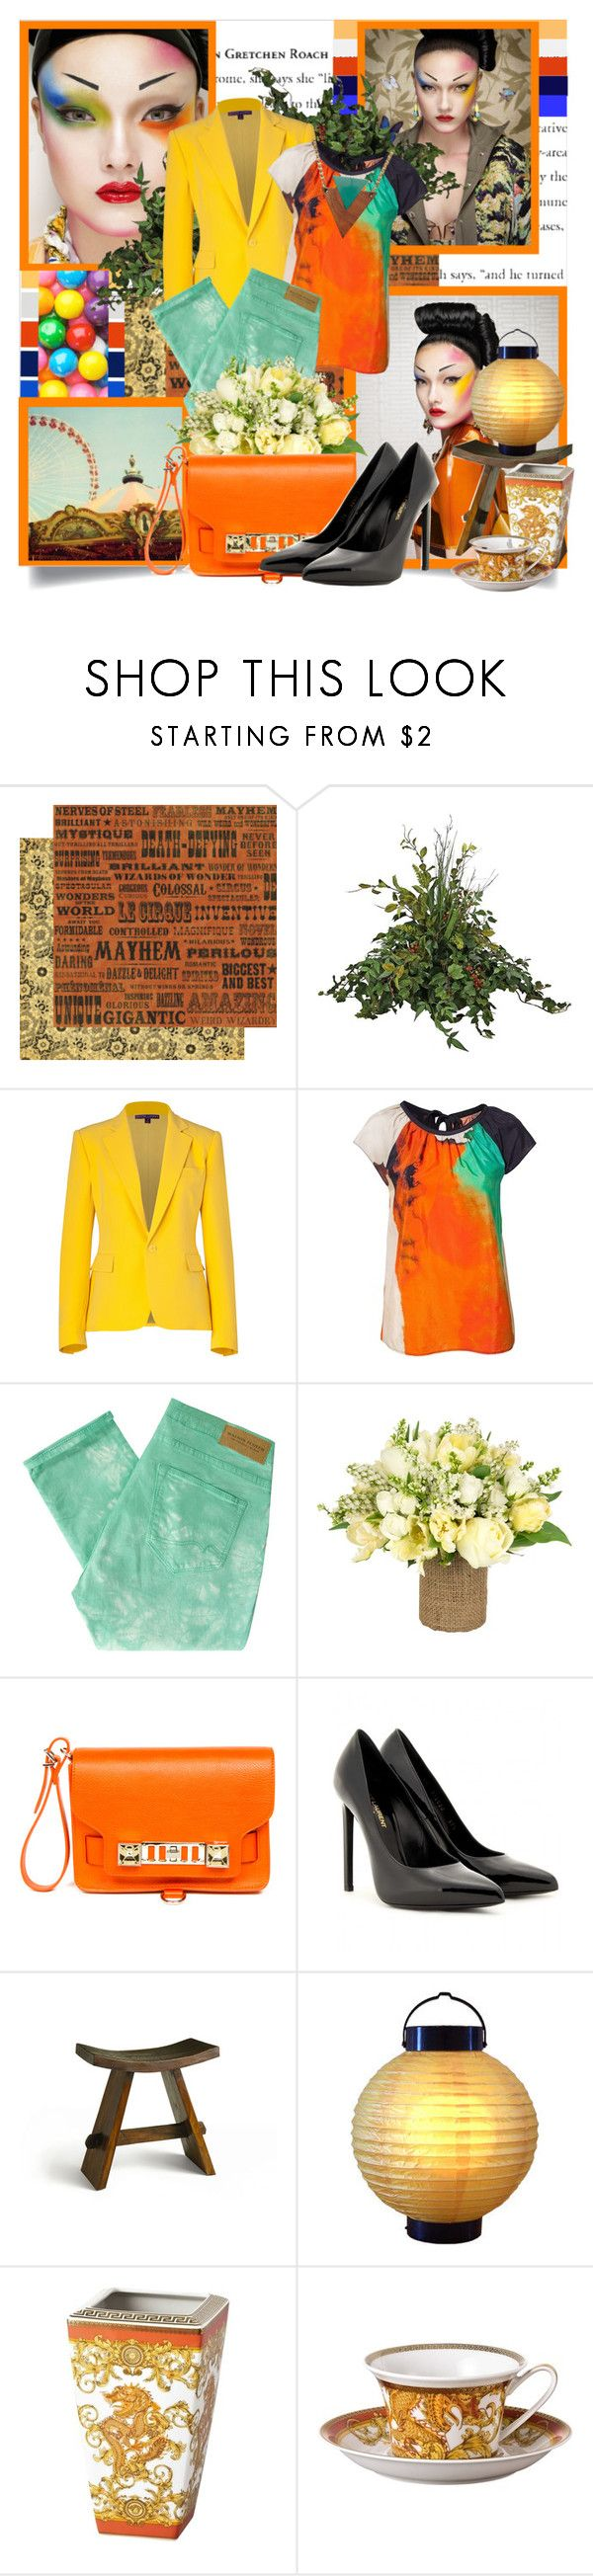 """Geisha"" by lavette-daltons ❤ liked on Polyvore featuring Yumi, Ralph Lauren Collection, BOSS Orange, Maison Scotch, Jayson Home, Proenza Schouler, Yves Saint Laurent, Rosenthal, boyfriend blazers and top"